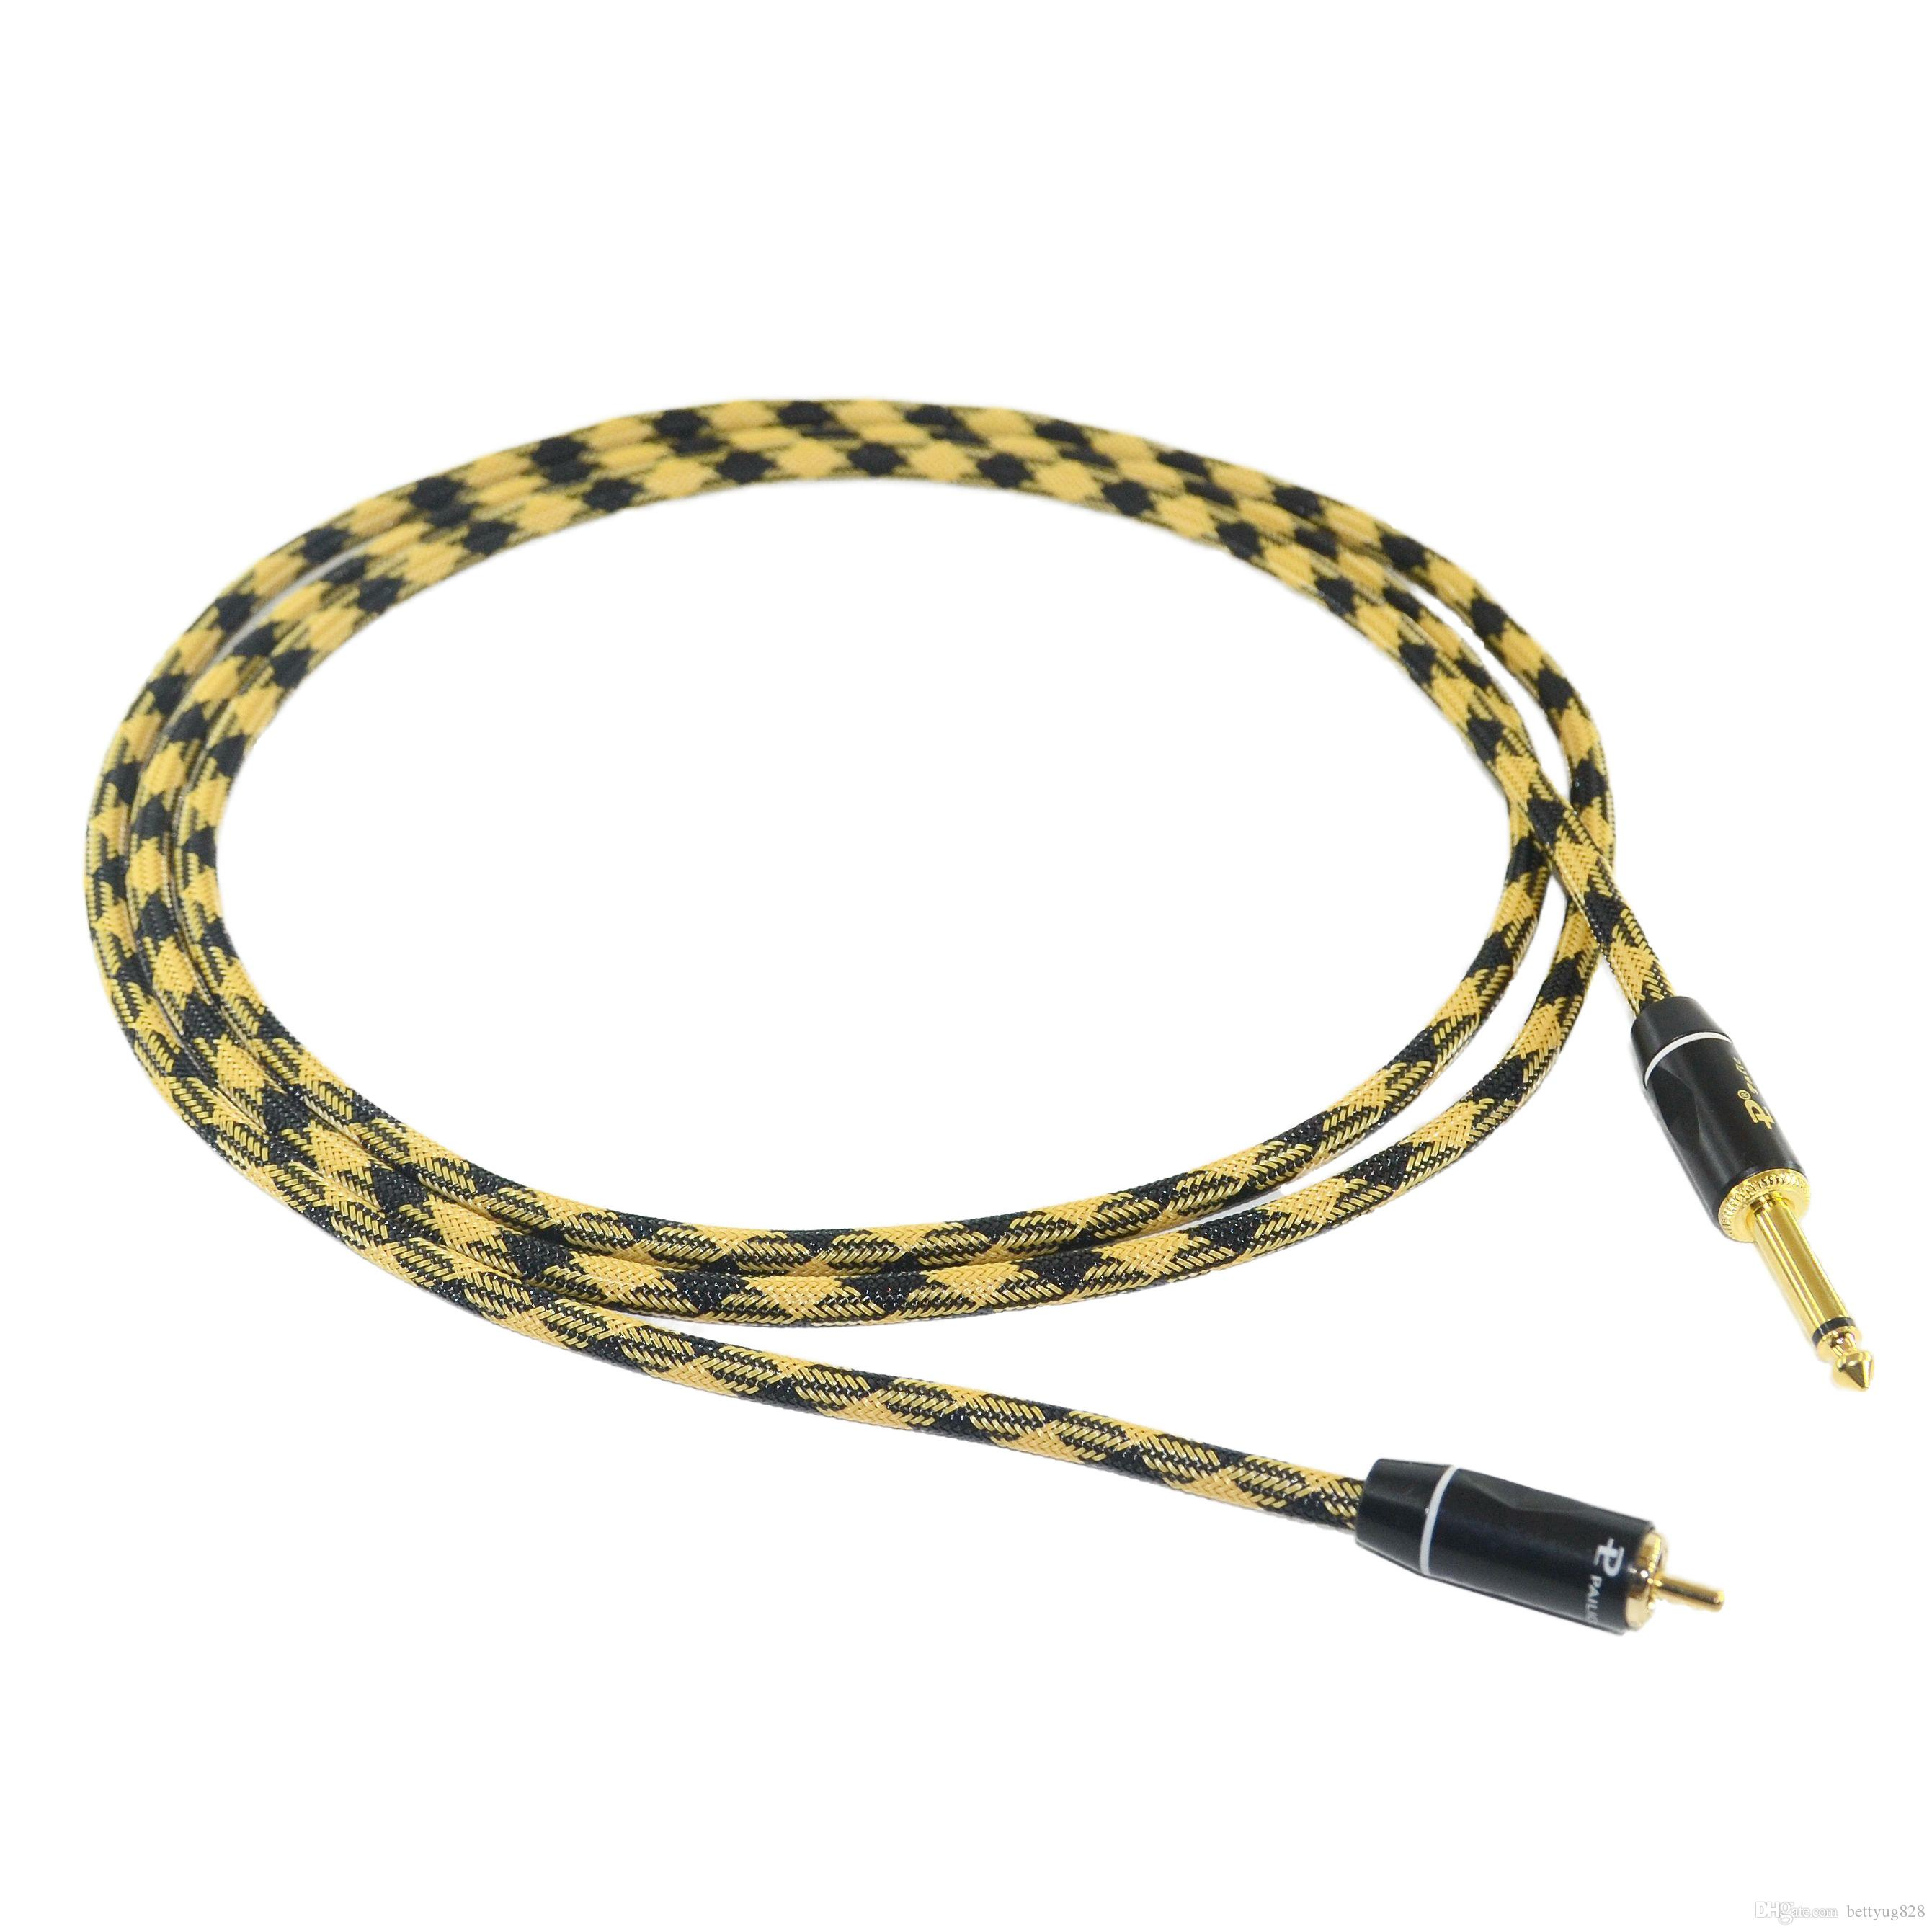 1PC HEAVY DUTY 15AWG COPPER WIRE RCA CLIPCORD 2METER CCSNAKERCA-01B FOR  TATTOO POWER SUPPLY